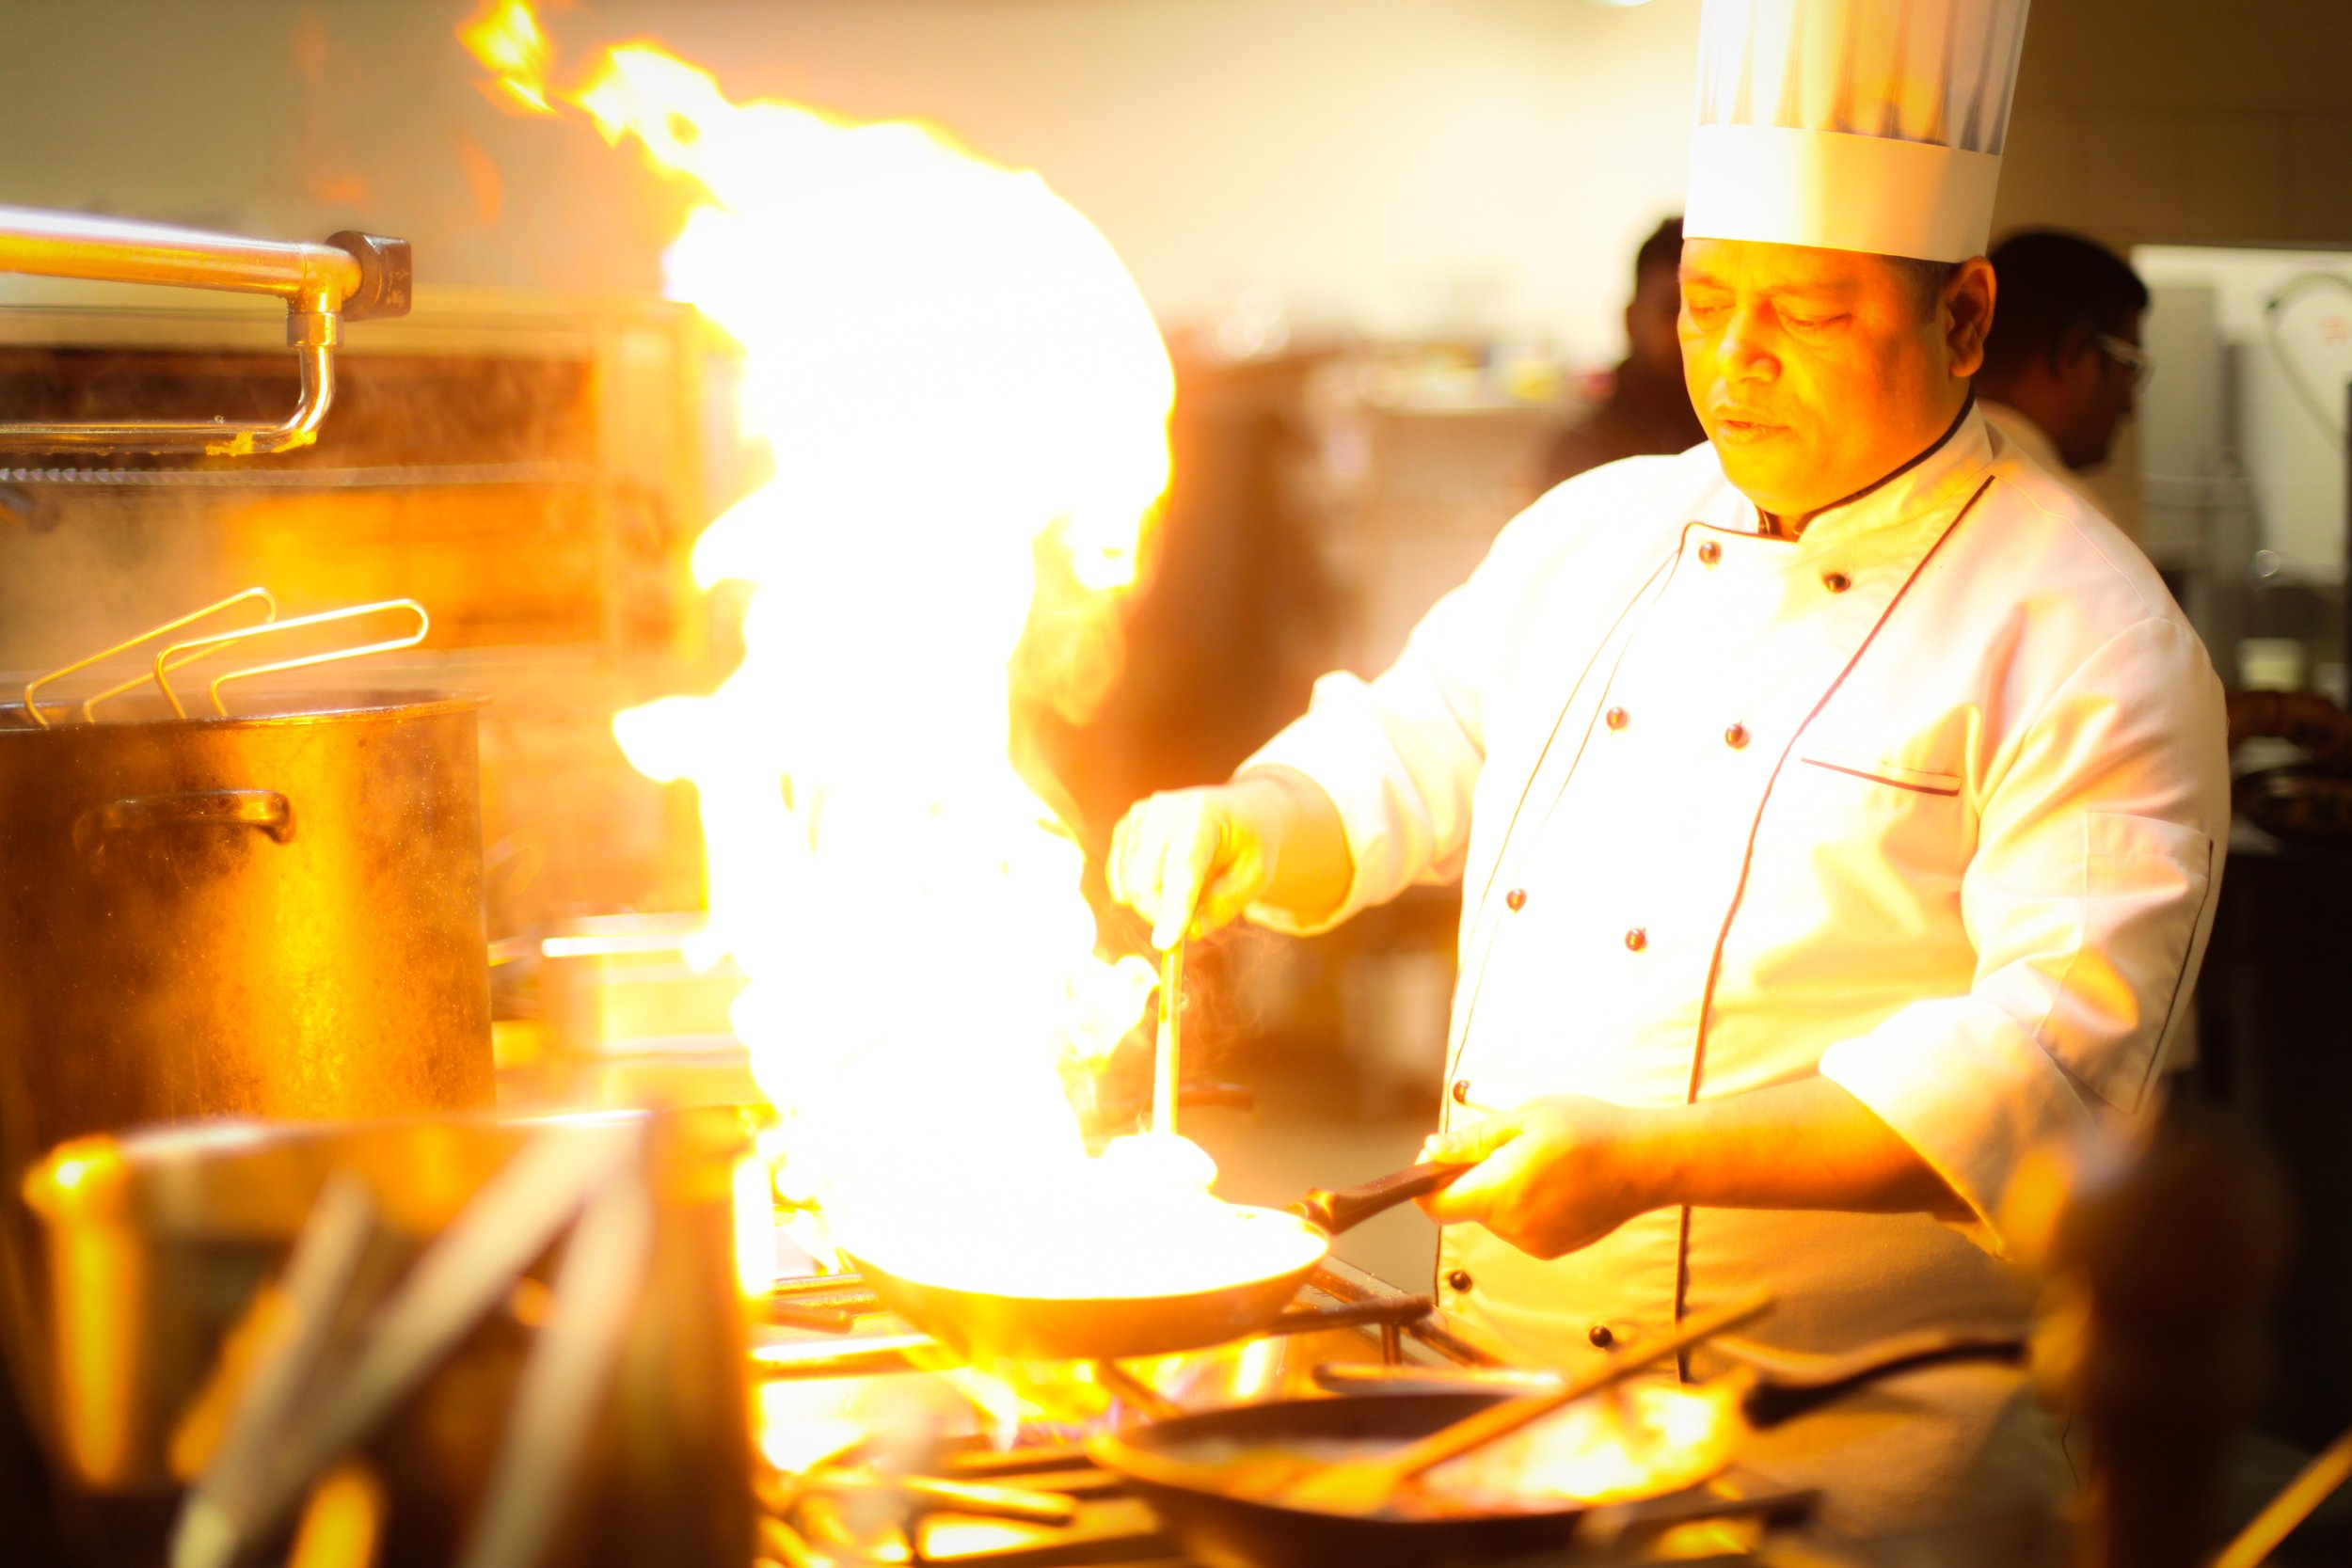 Commercial Cooking - From chefs to building owners, we've got your commercial cooking needs covered. Keep your restaurants and businesses operating at peak performance with Propane Cowboy.